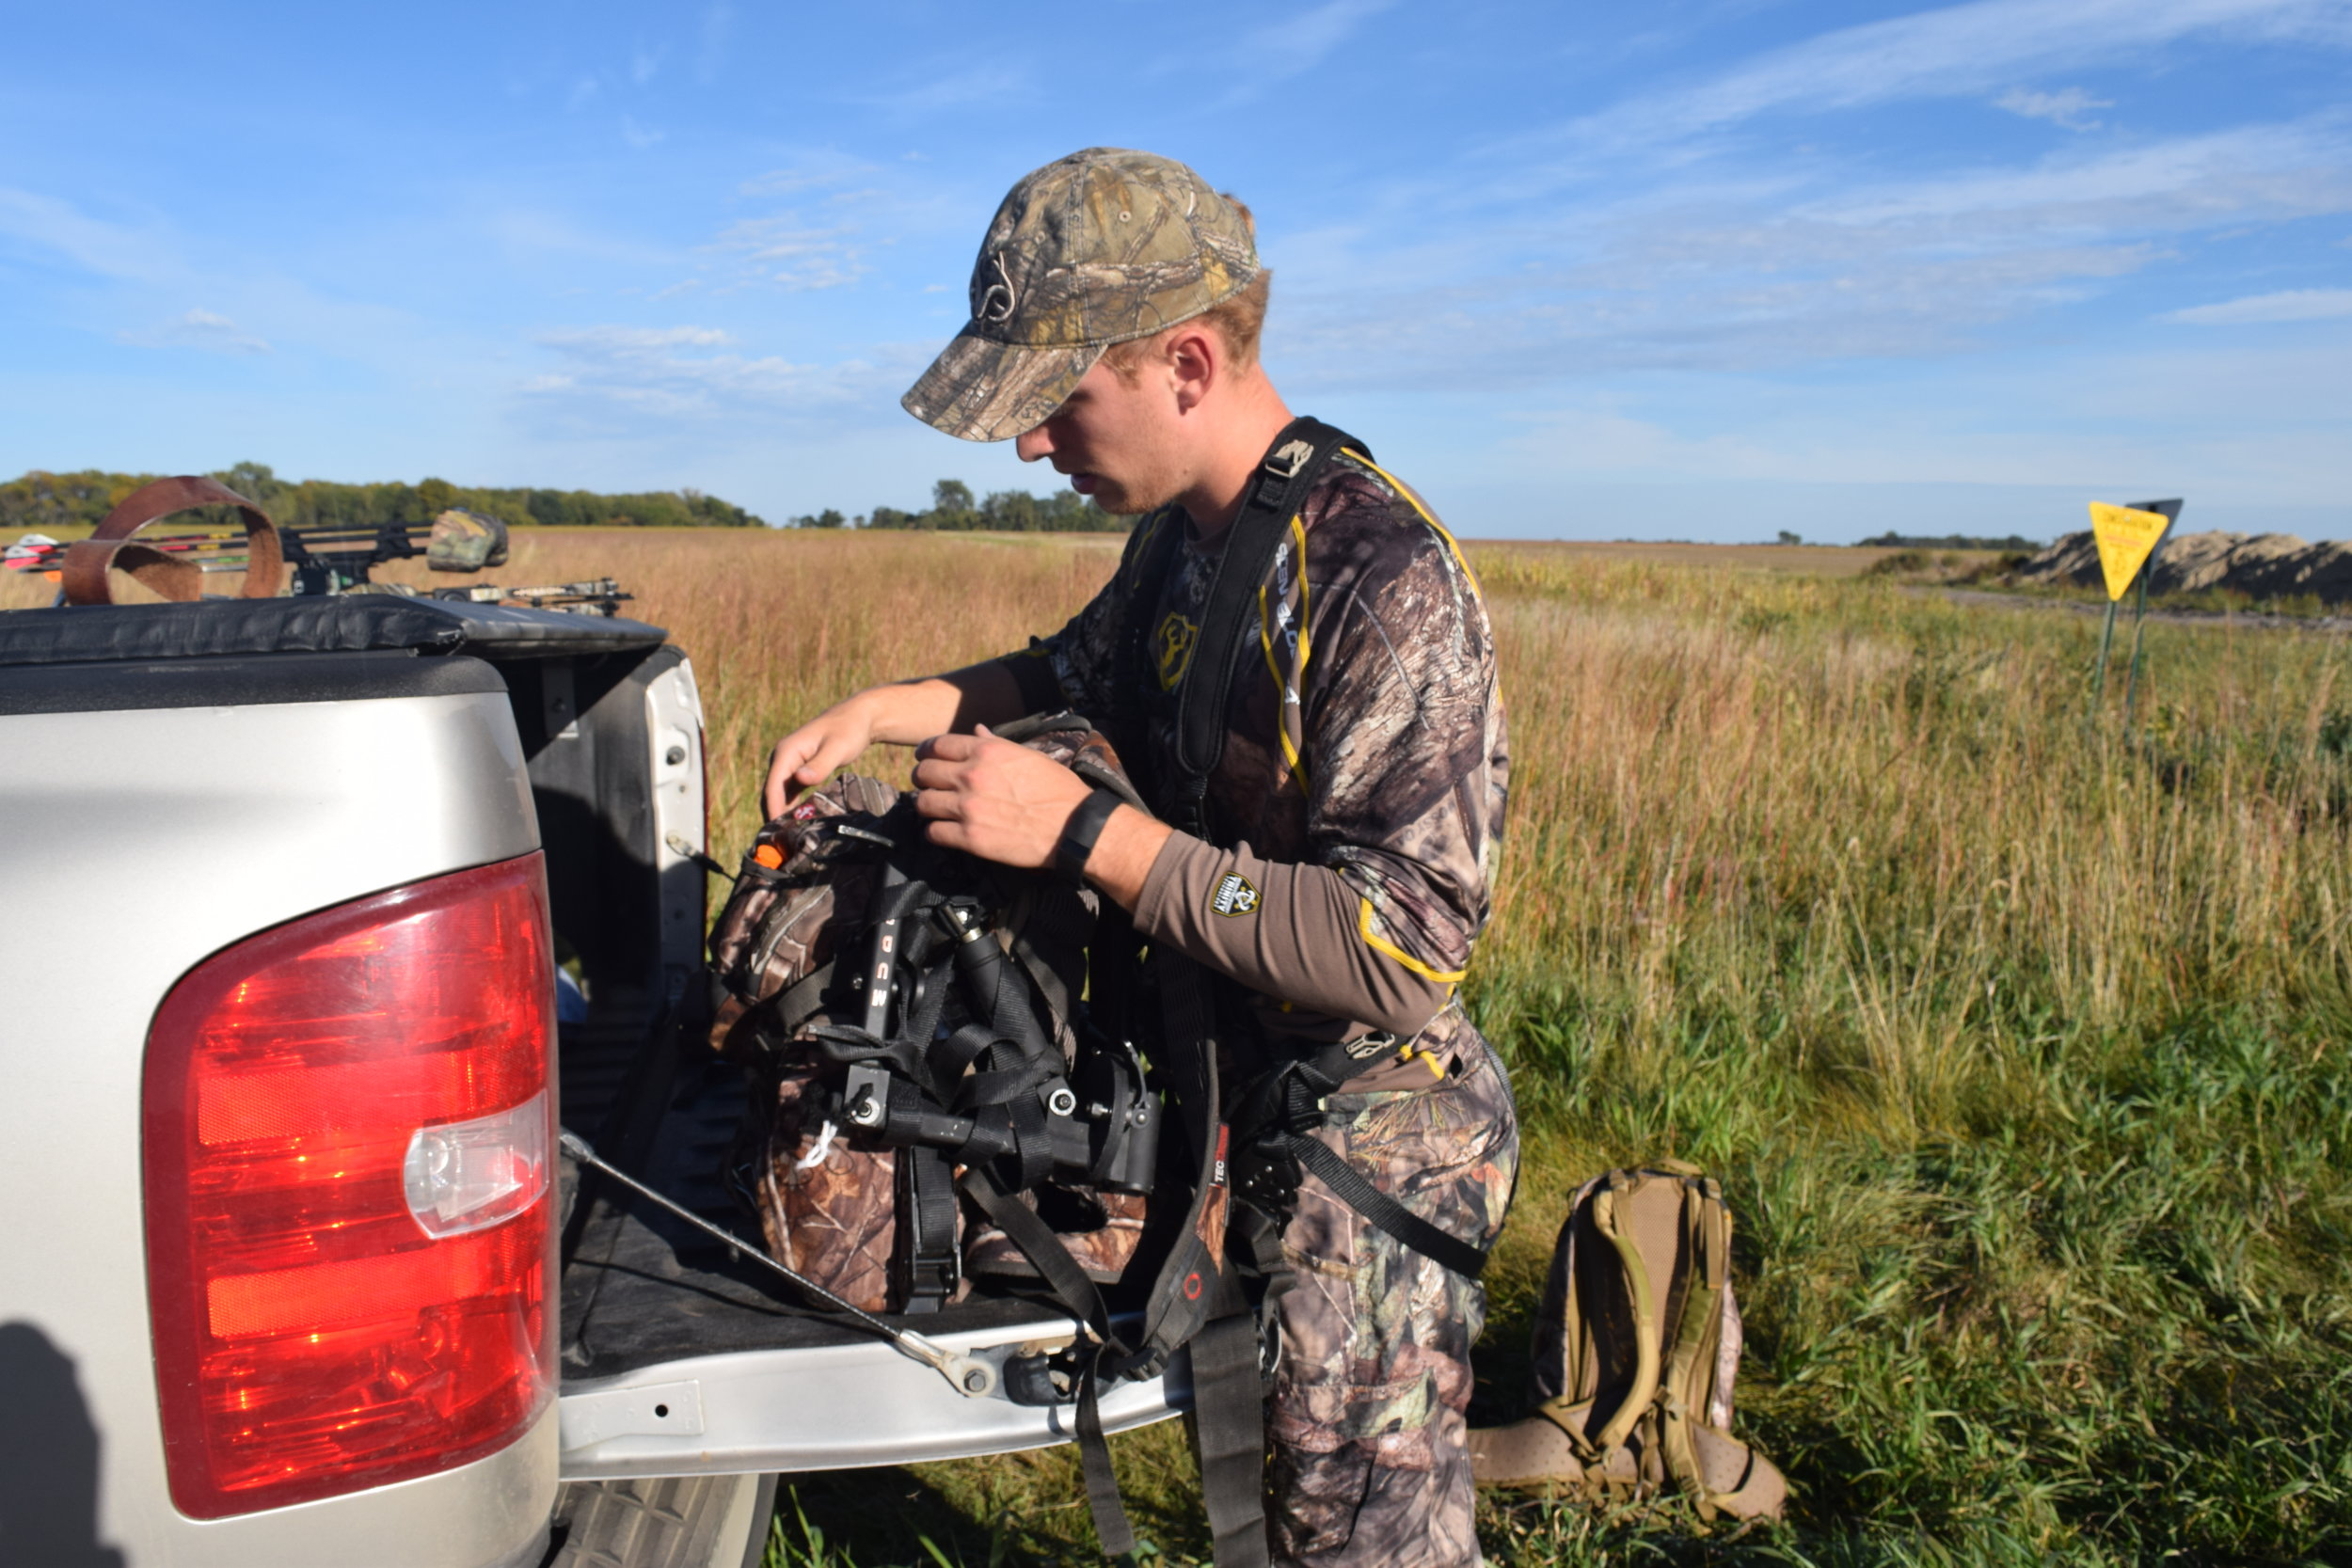 Strapping your camera arm and base to the outside of your pack will make the haul into the stand much more tolerable.